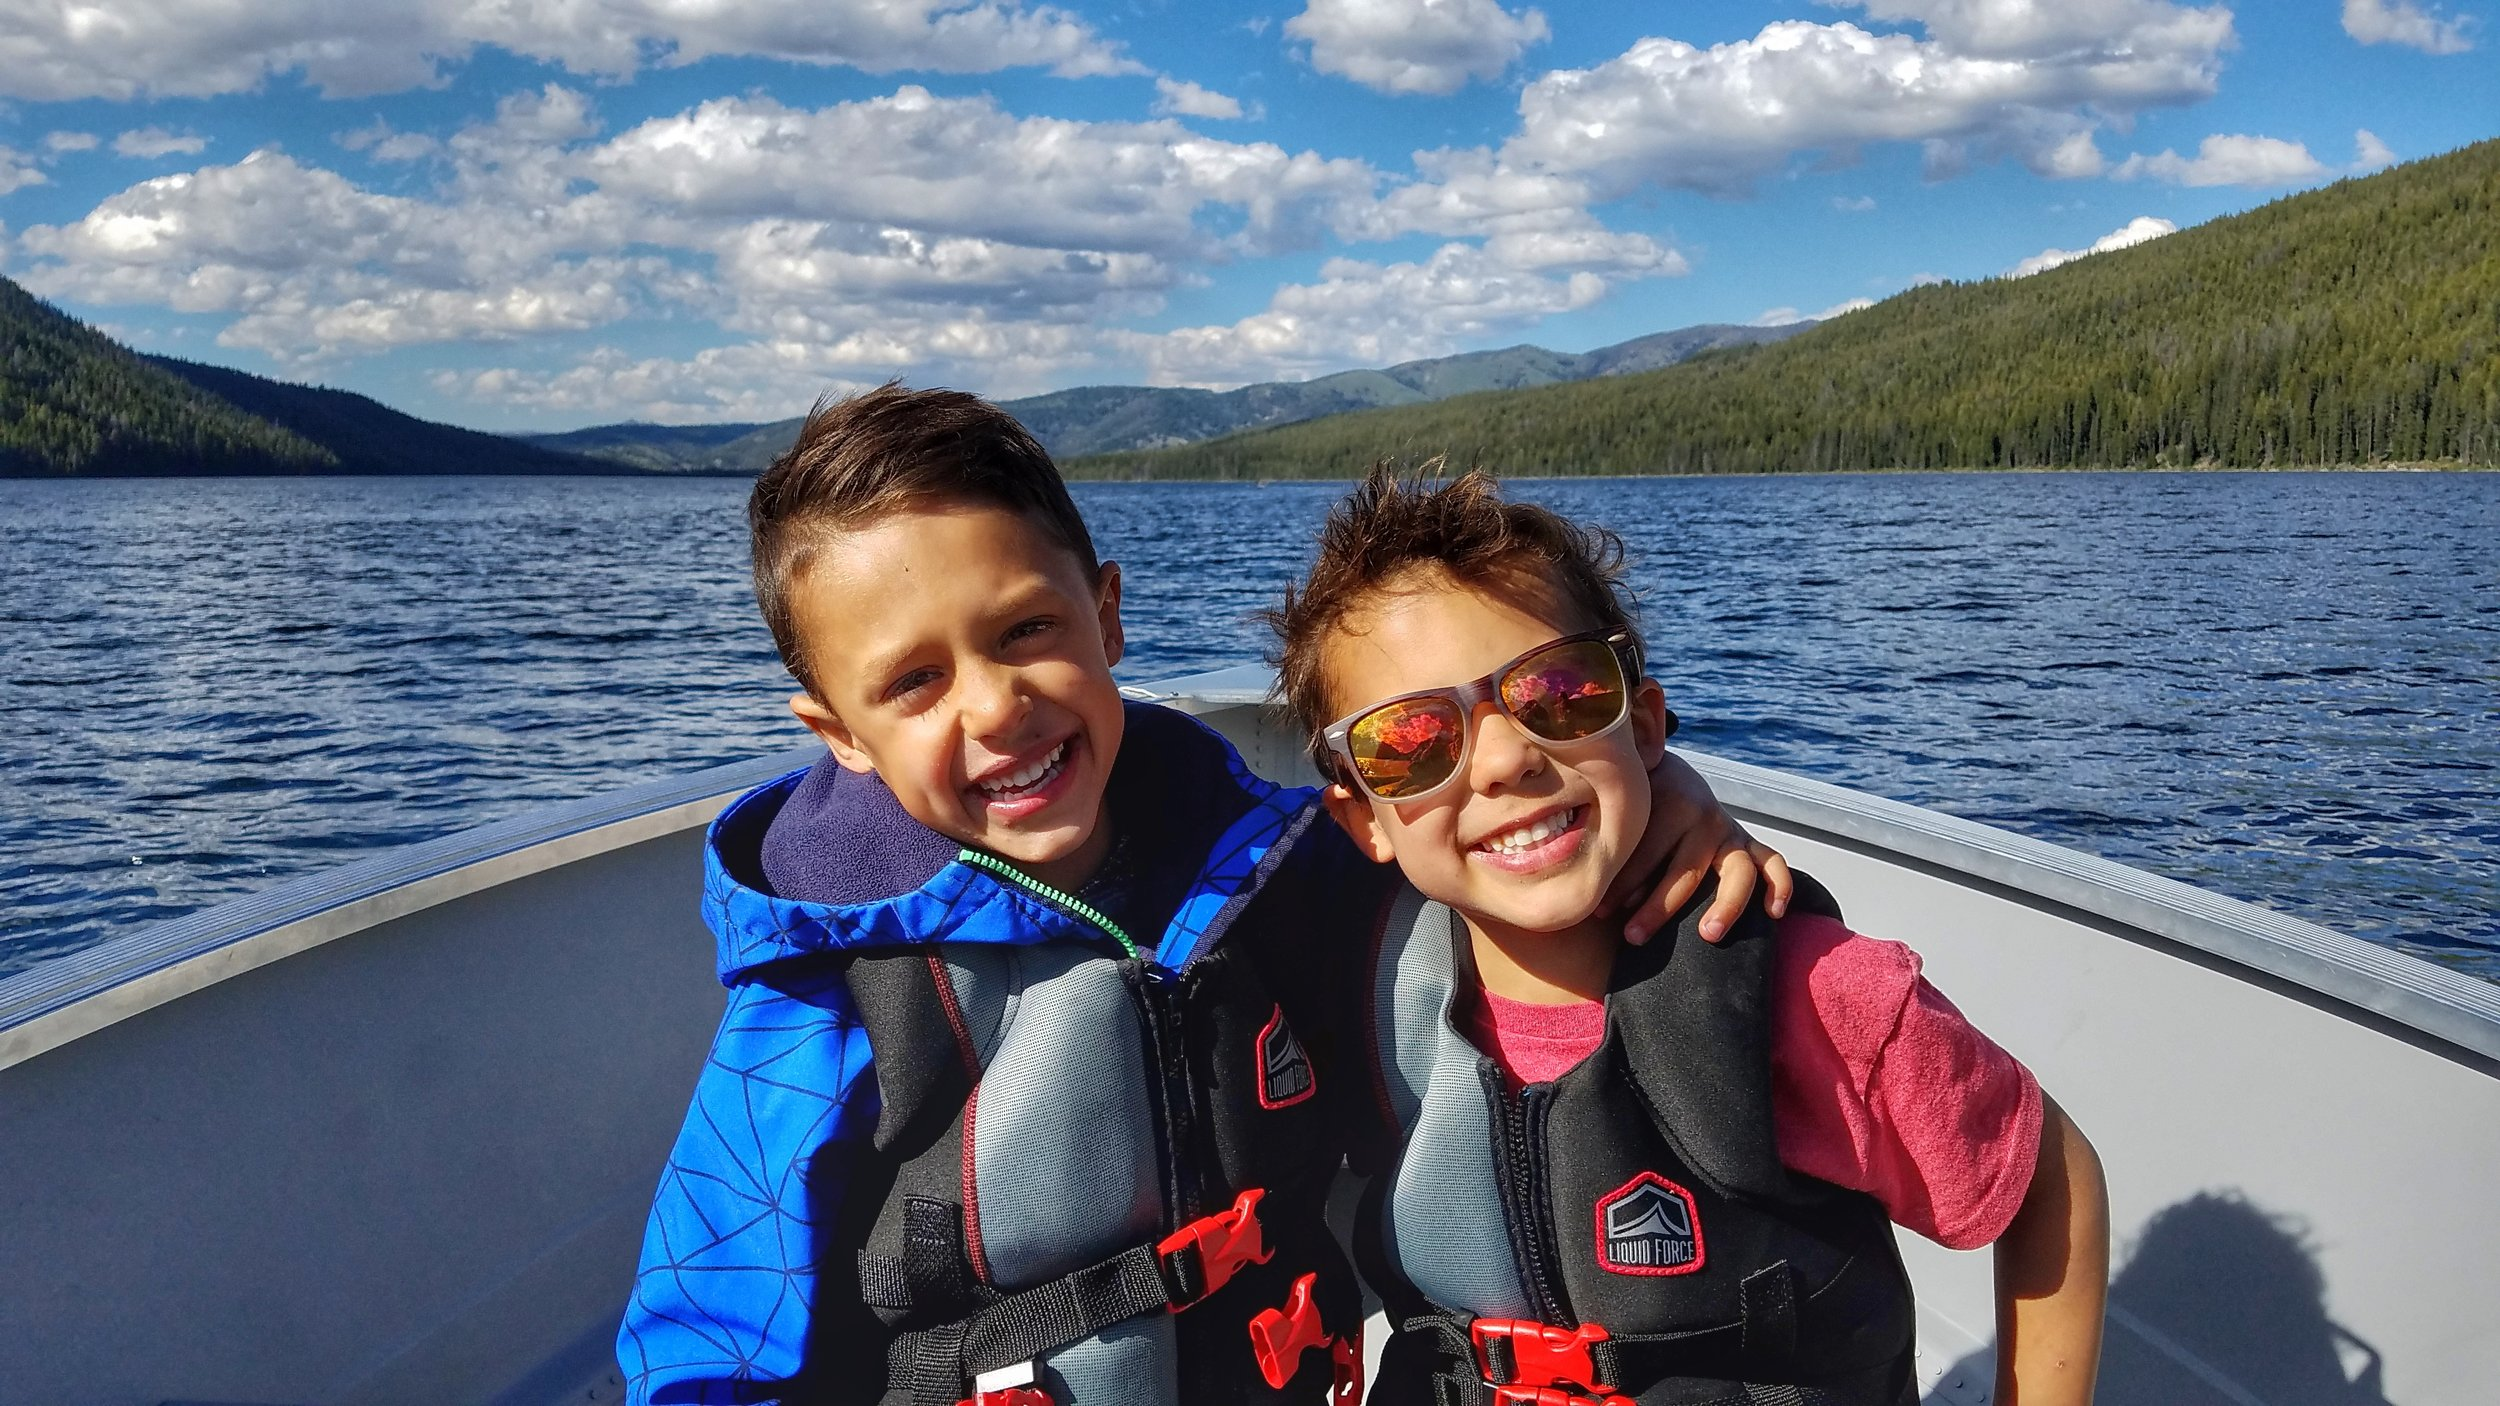 These two - Bennett & Reid, Redfish Lake, Idaho